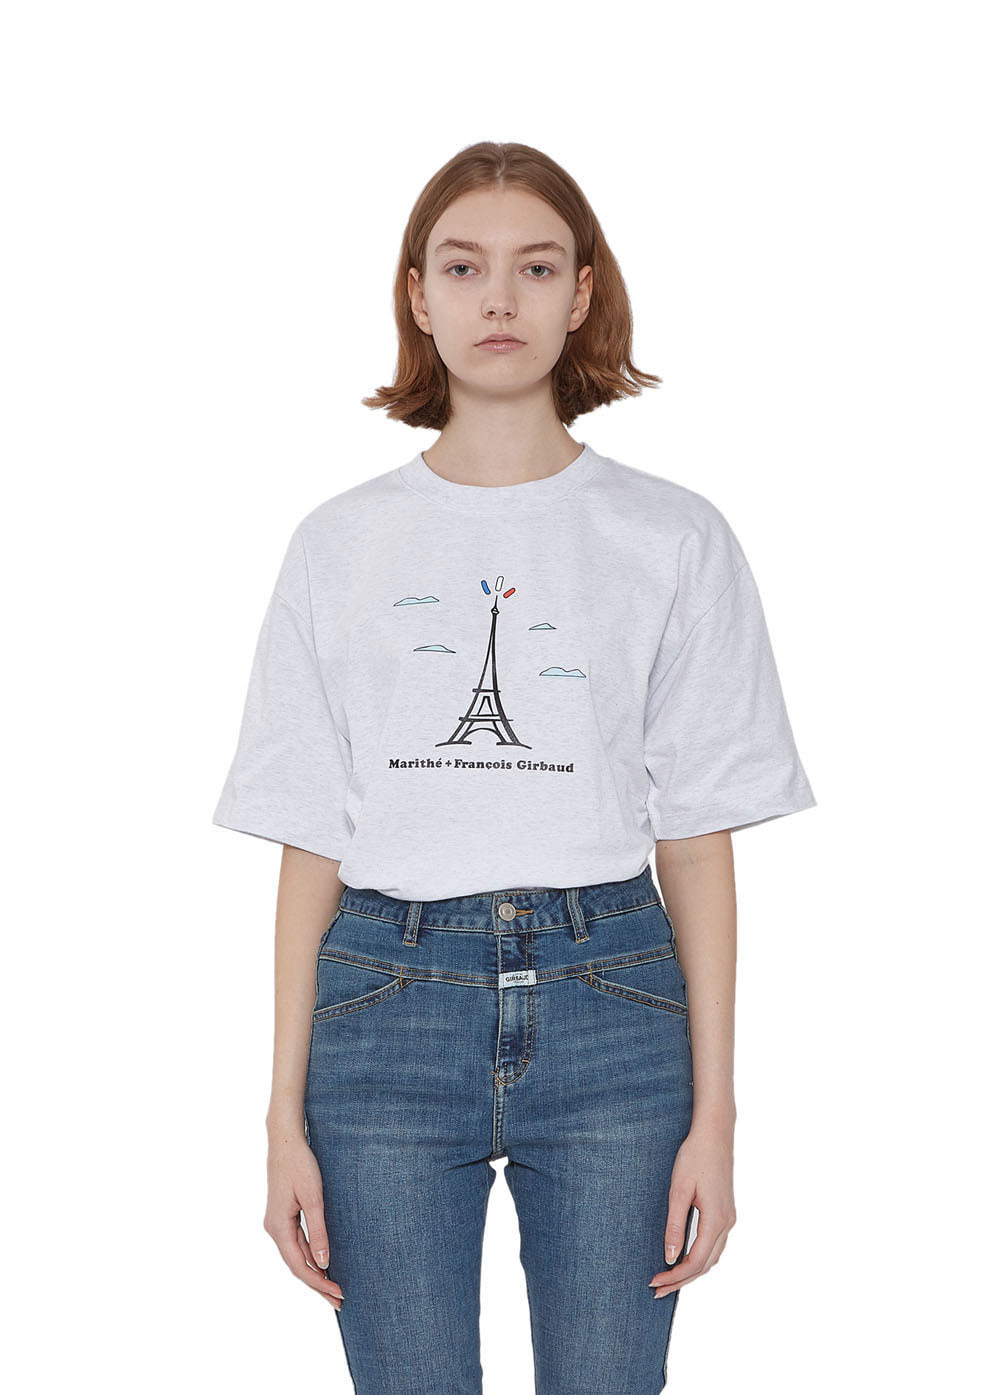 MFG TOWER TEE heather gray